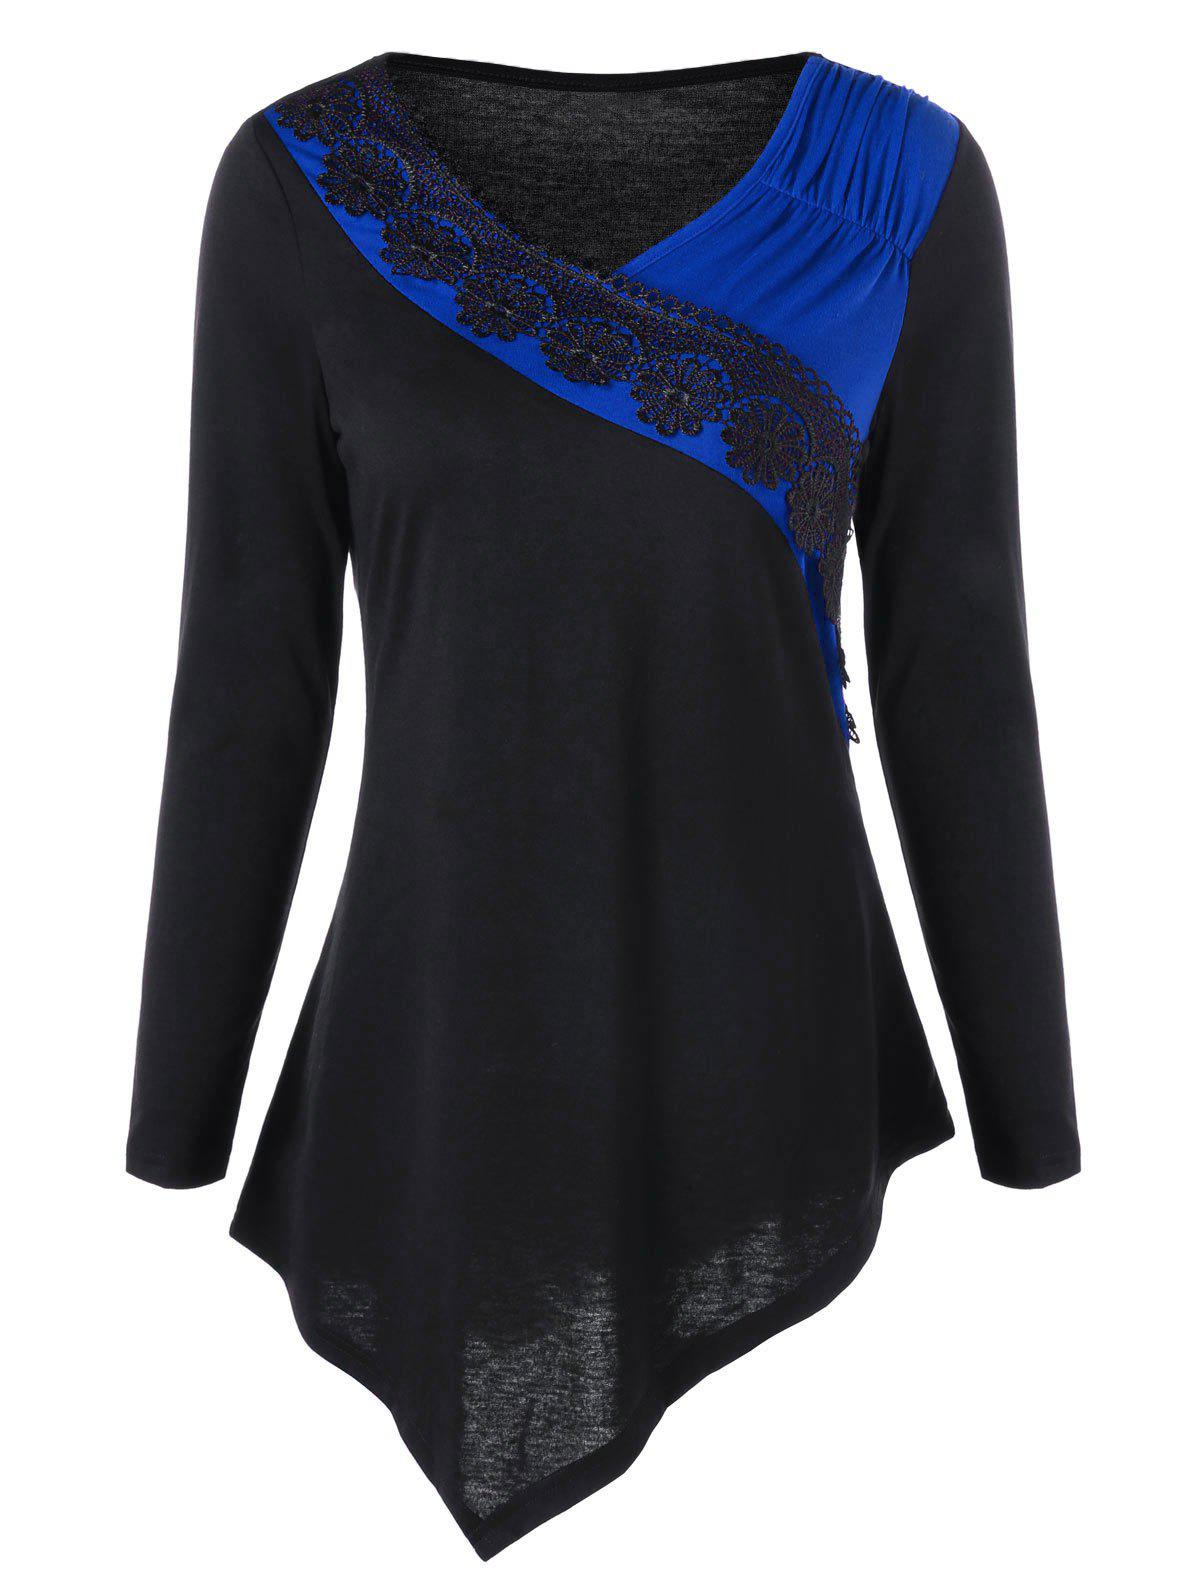 Two Tone Lace Trim Asymmetrical TopWOMEN<br><br>Size: L; Color: BLUE; Material: Polyester,Spandex; Shirt Length: Long; Sleeve Length: Full; Collar: V-Neck; Style: Casual; Embellishment: Lace; Pattern Type: Solid; Season: Fall,Spring; Weight: 0.2400kg; Package Contents: 1 x Top;